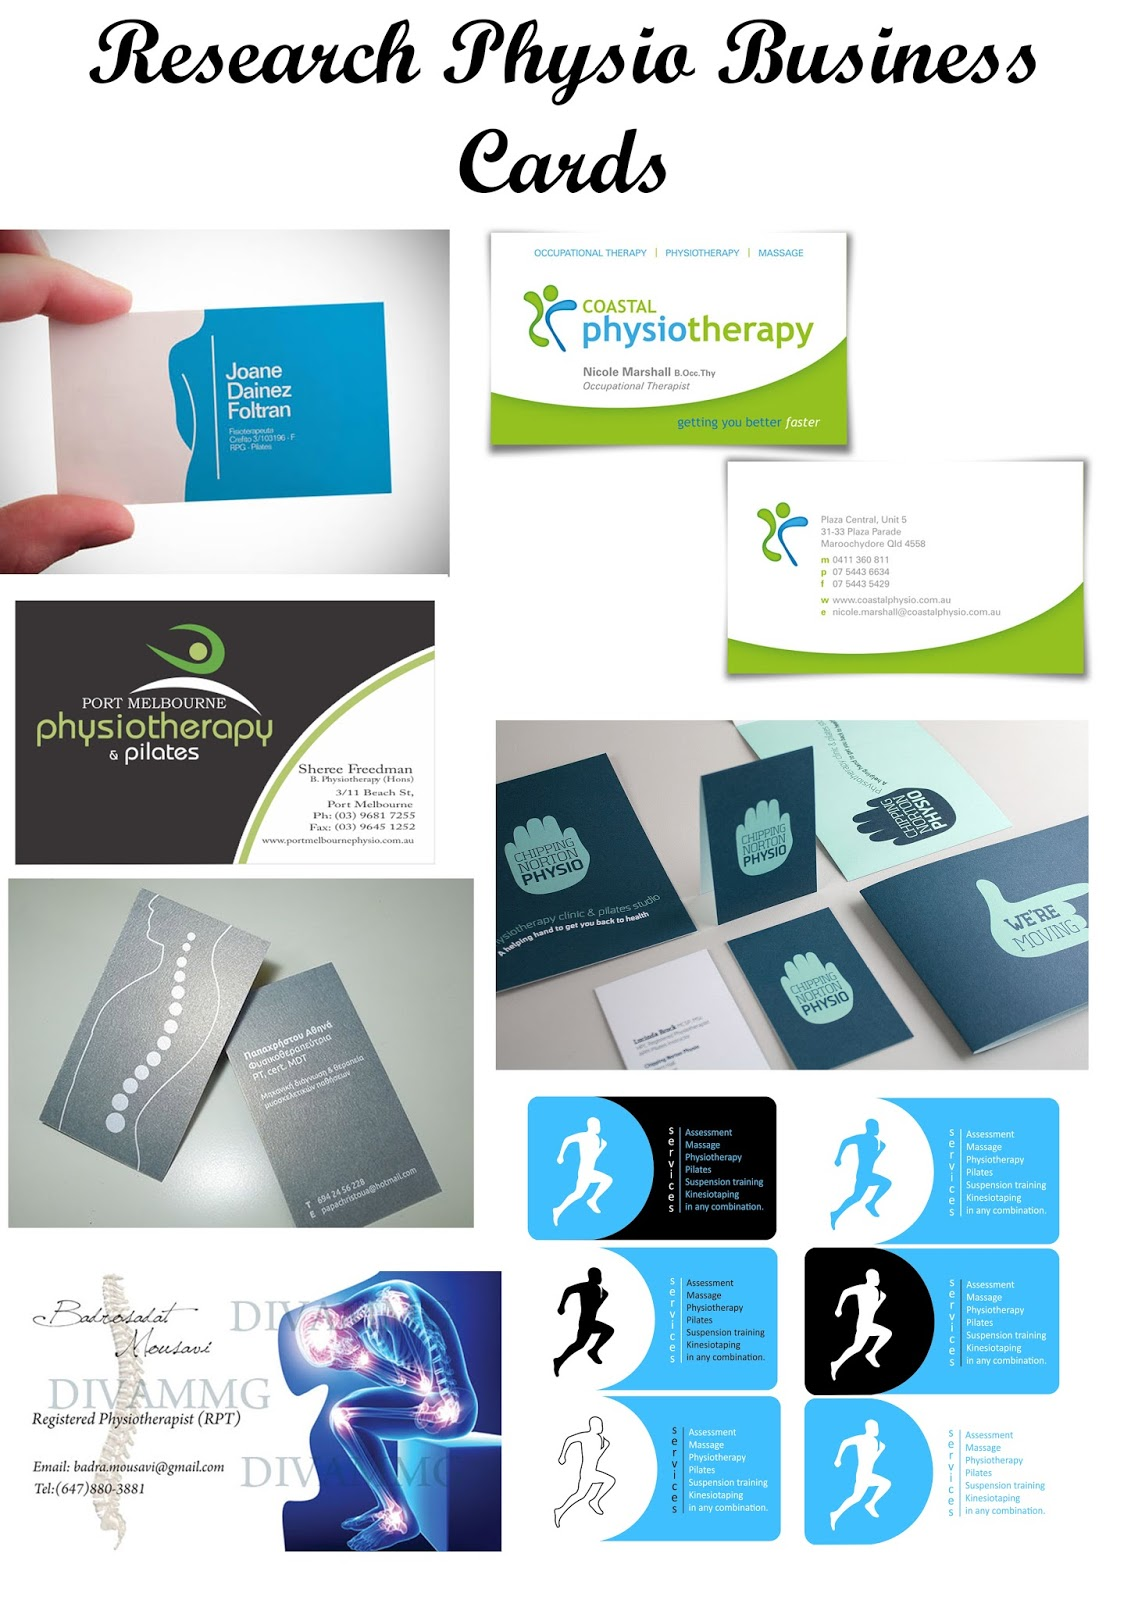 Physiotherapy Business Cards And Logos